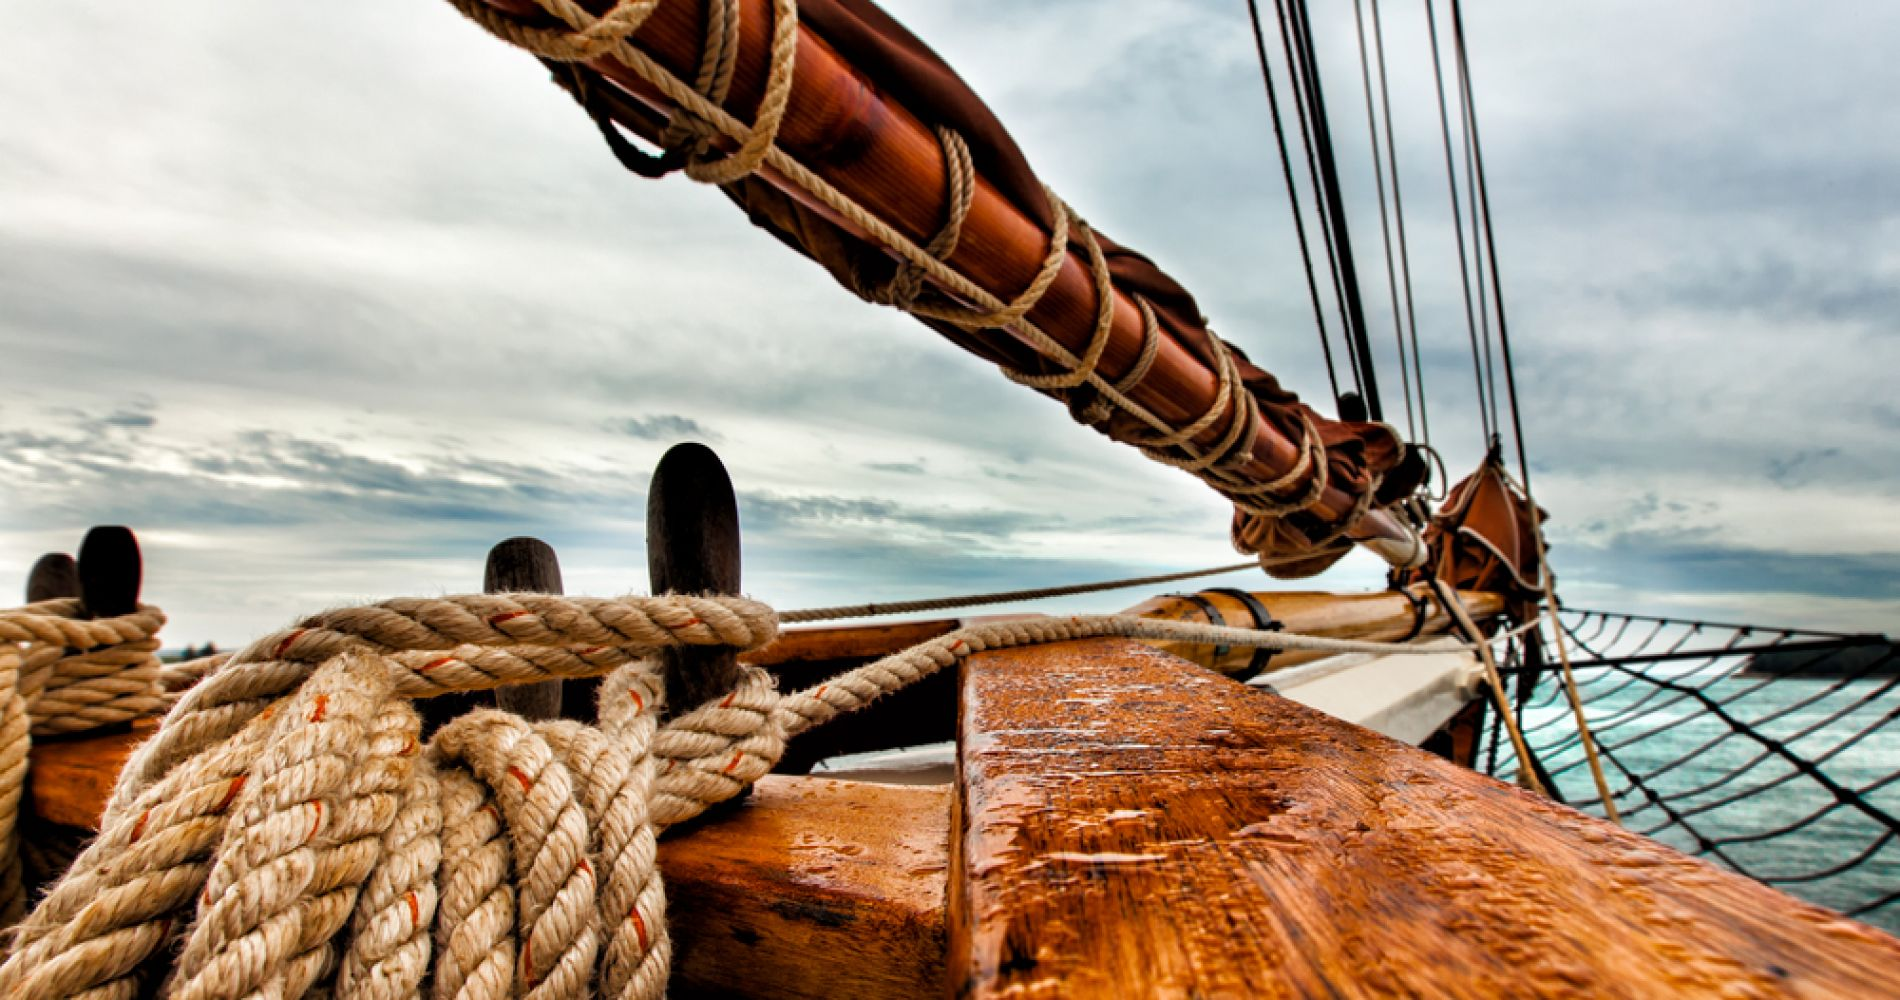 Sail on the Schooner America Experience Gift